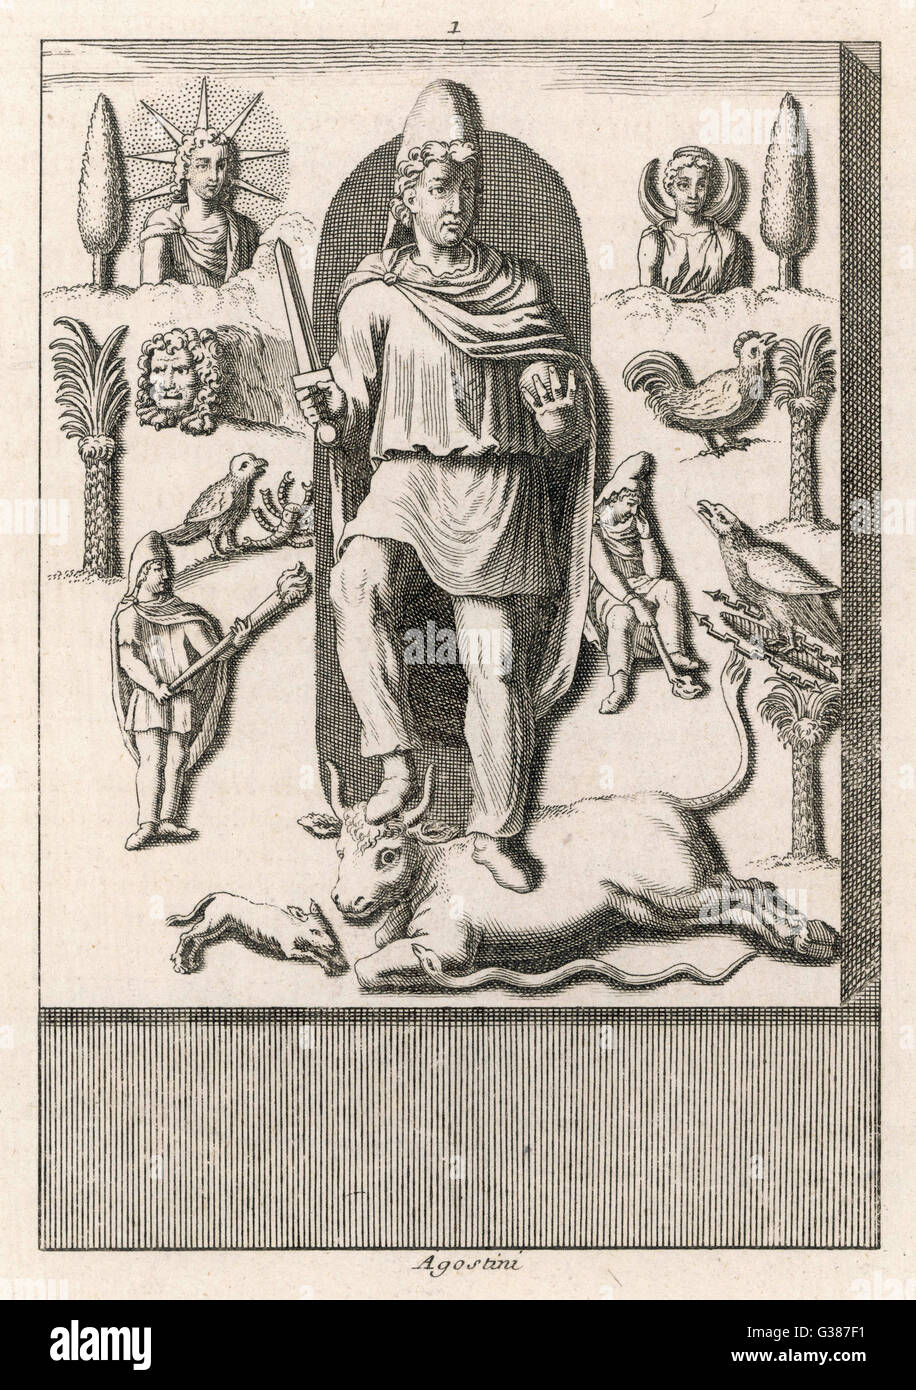 MITHRAS with associated emblems  and attributes - Stock Image